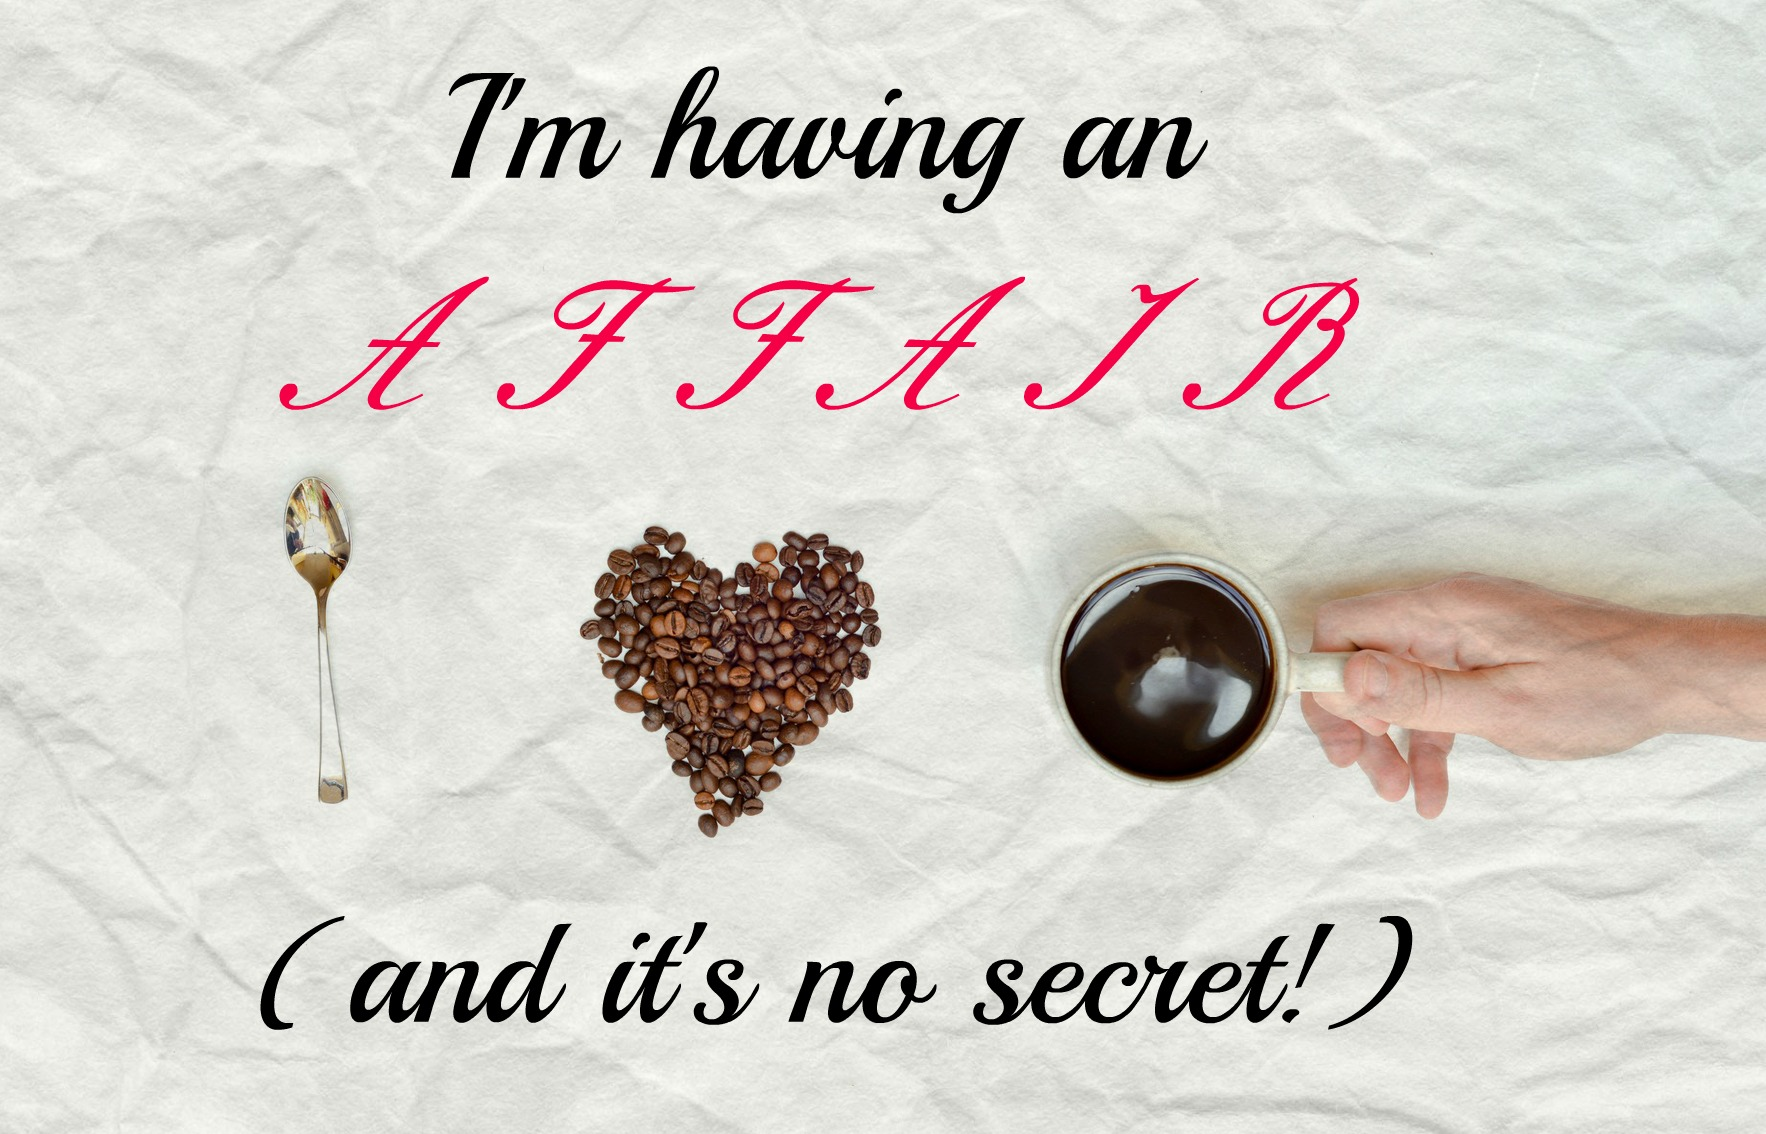 I'm having an affair, and it's no secret!